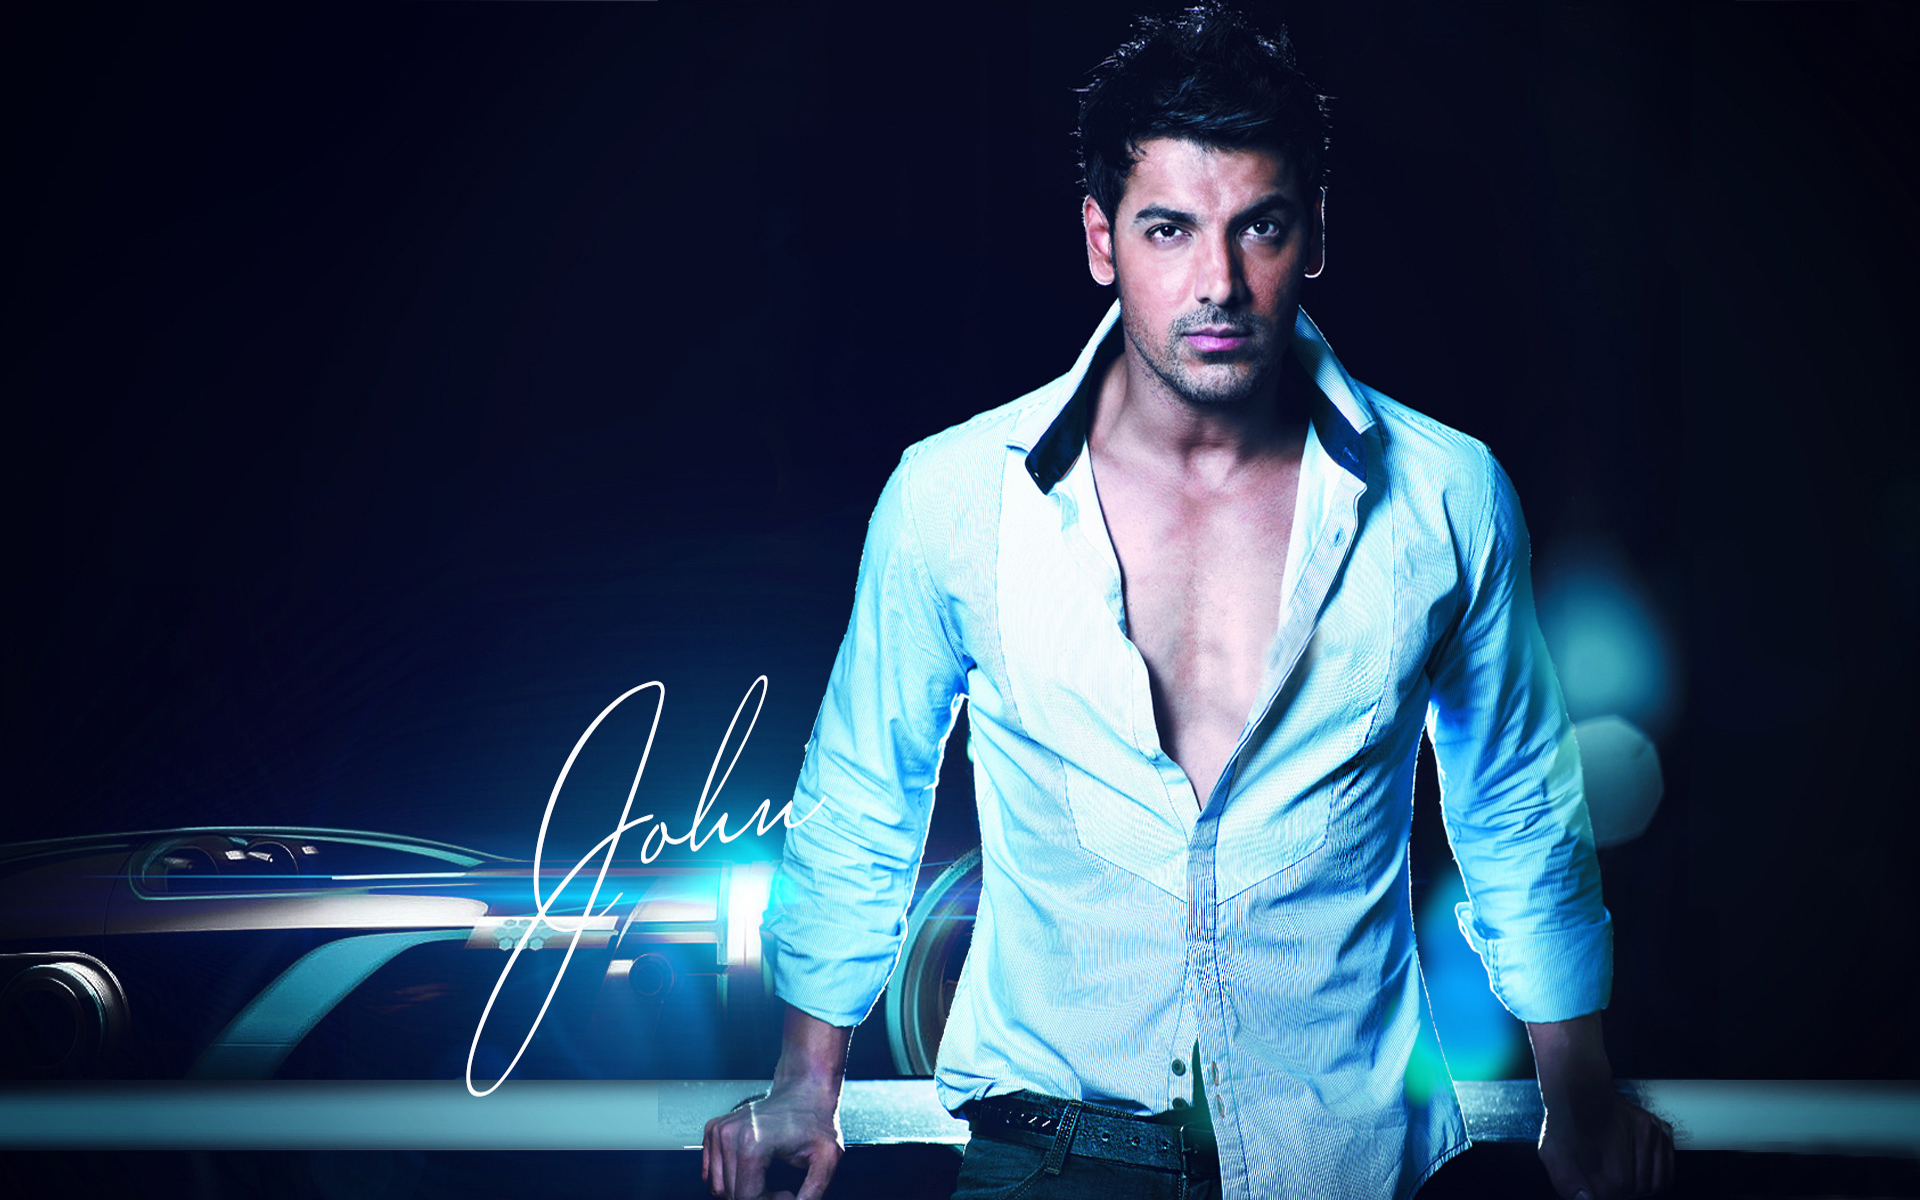 Wallpaper download john abraham - John Abraham Hd Wallpapers 2013